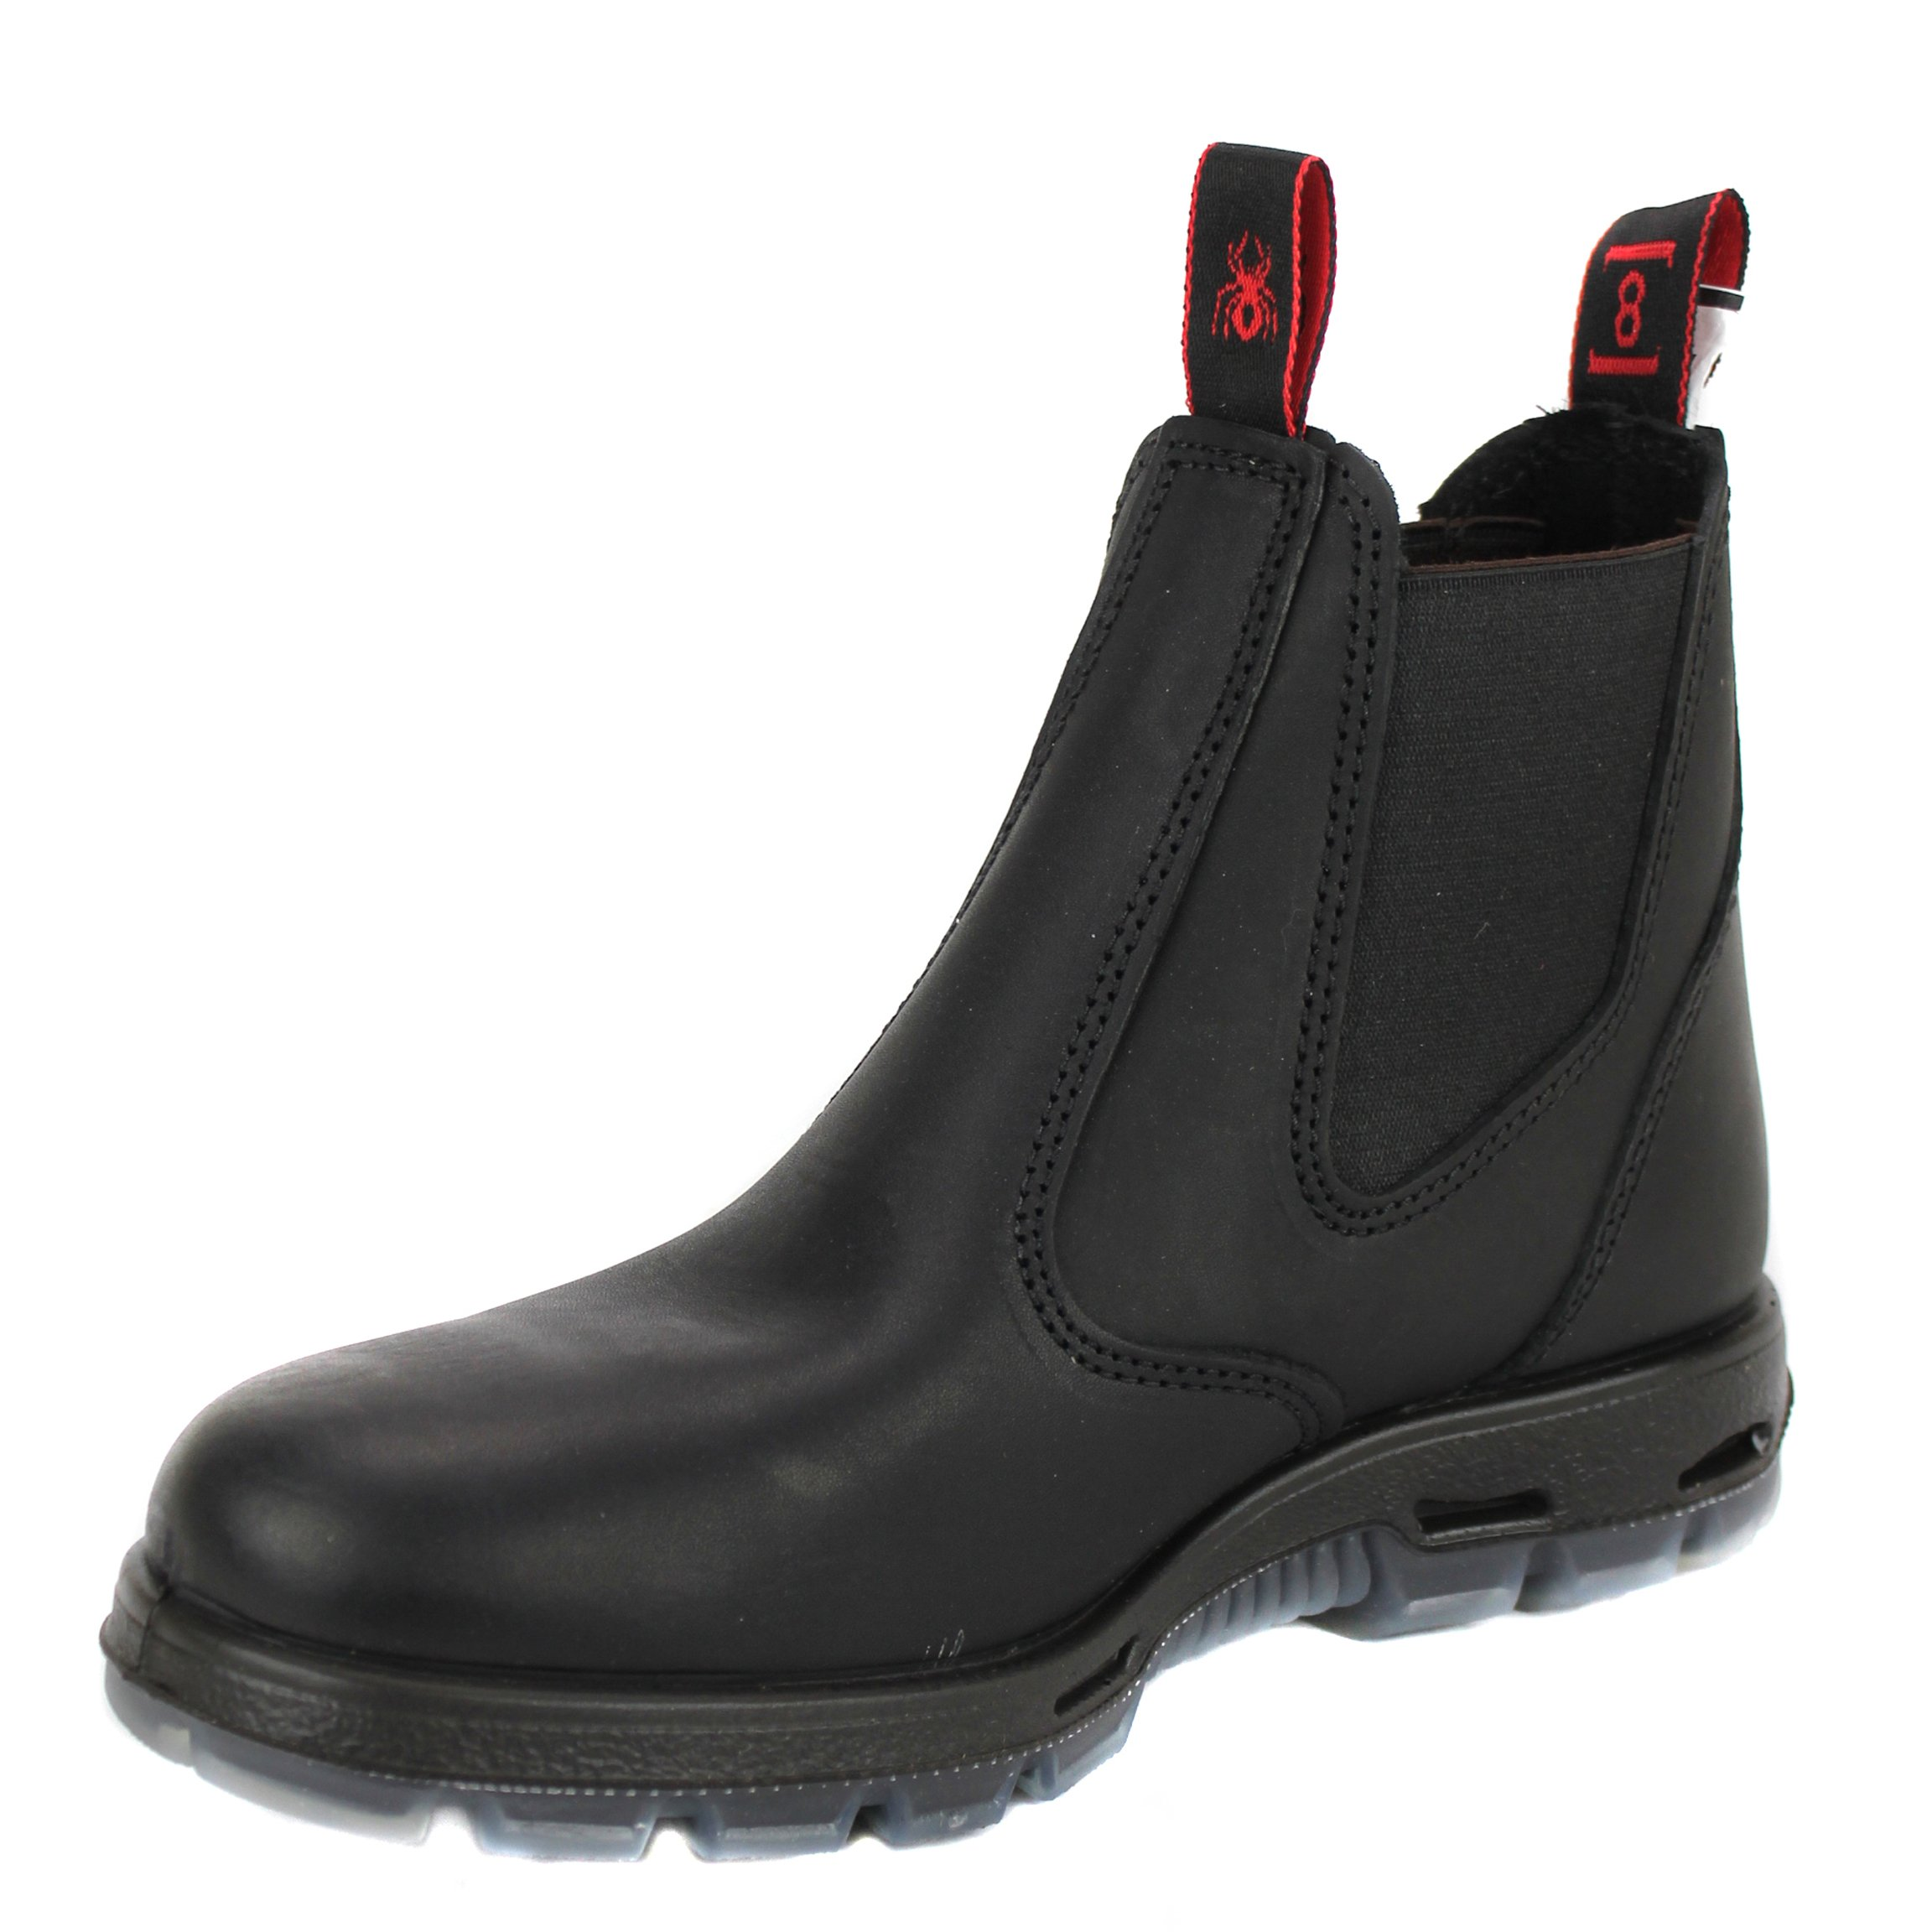 REDBACK BOOTS USA RDBUBBK9.5 SZ 9.5 Black Slip-On Full Grain Leather Boot by REDBACK BOOTS USA